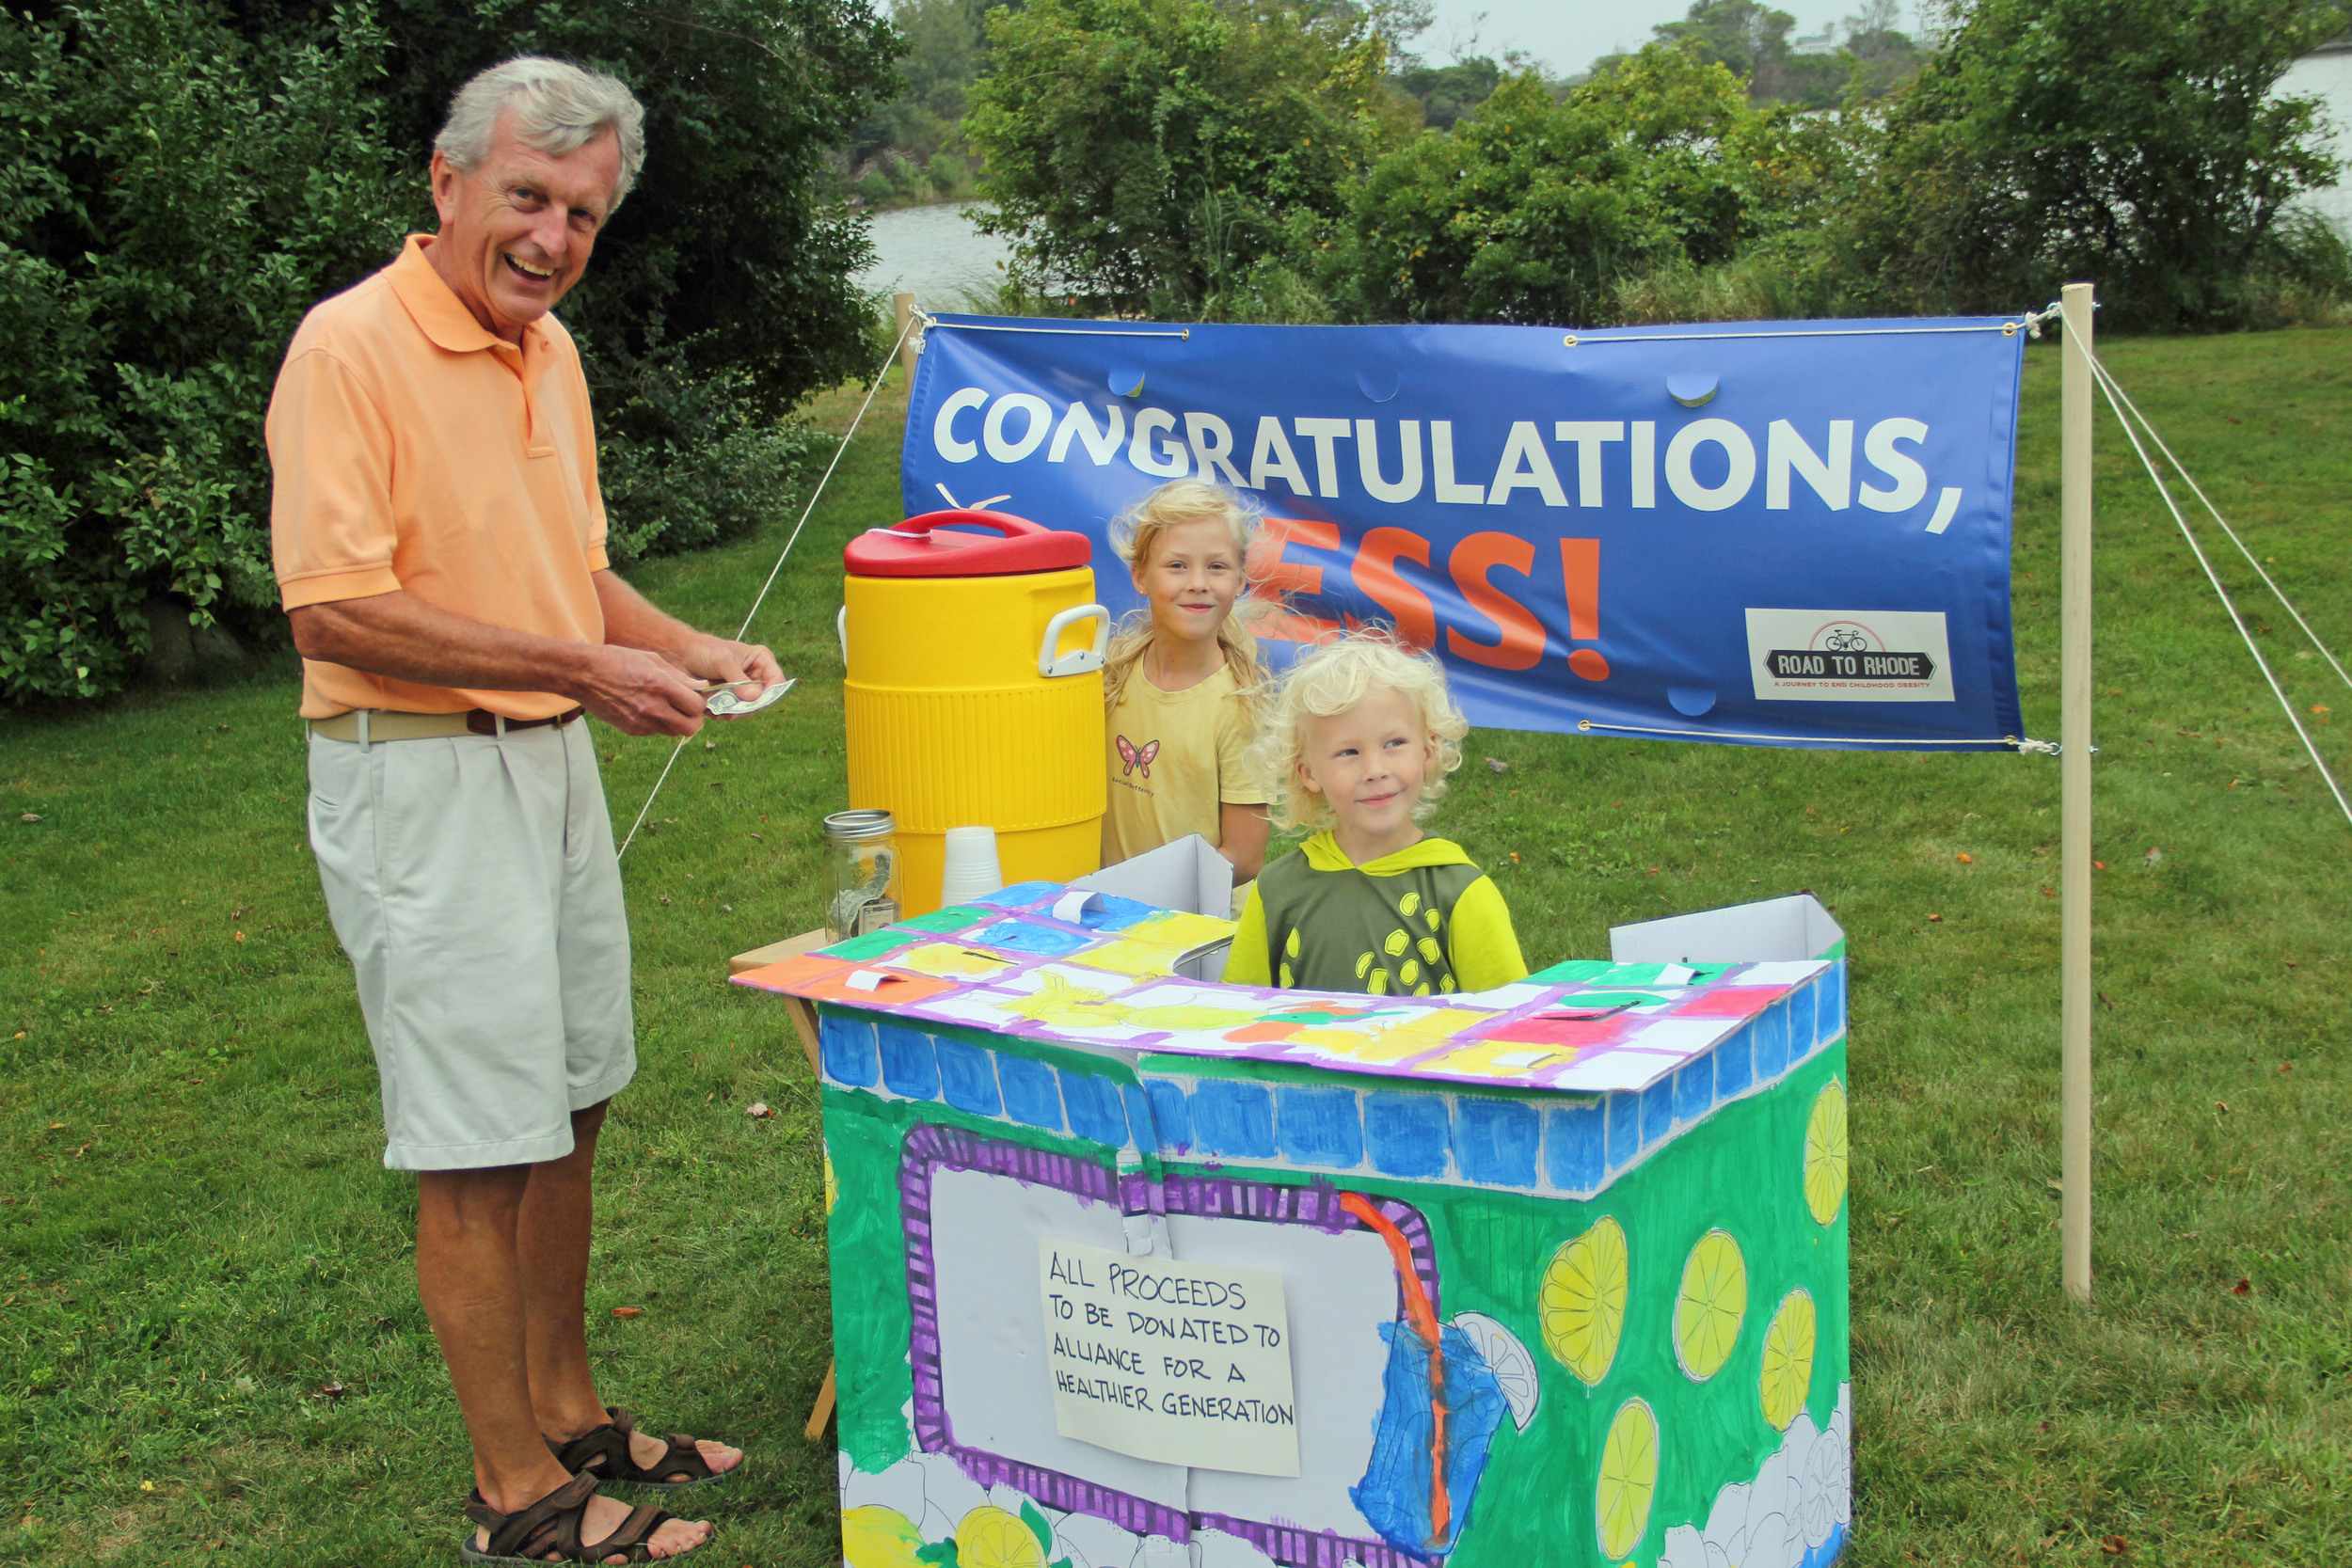 Greg Plunkett purchasing lemonade!